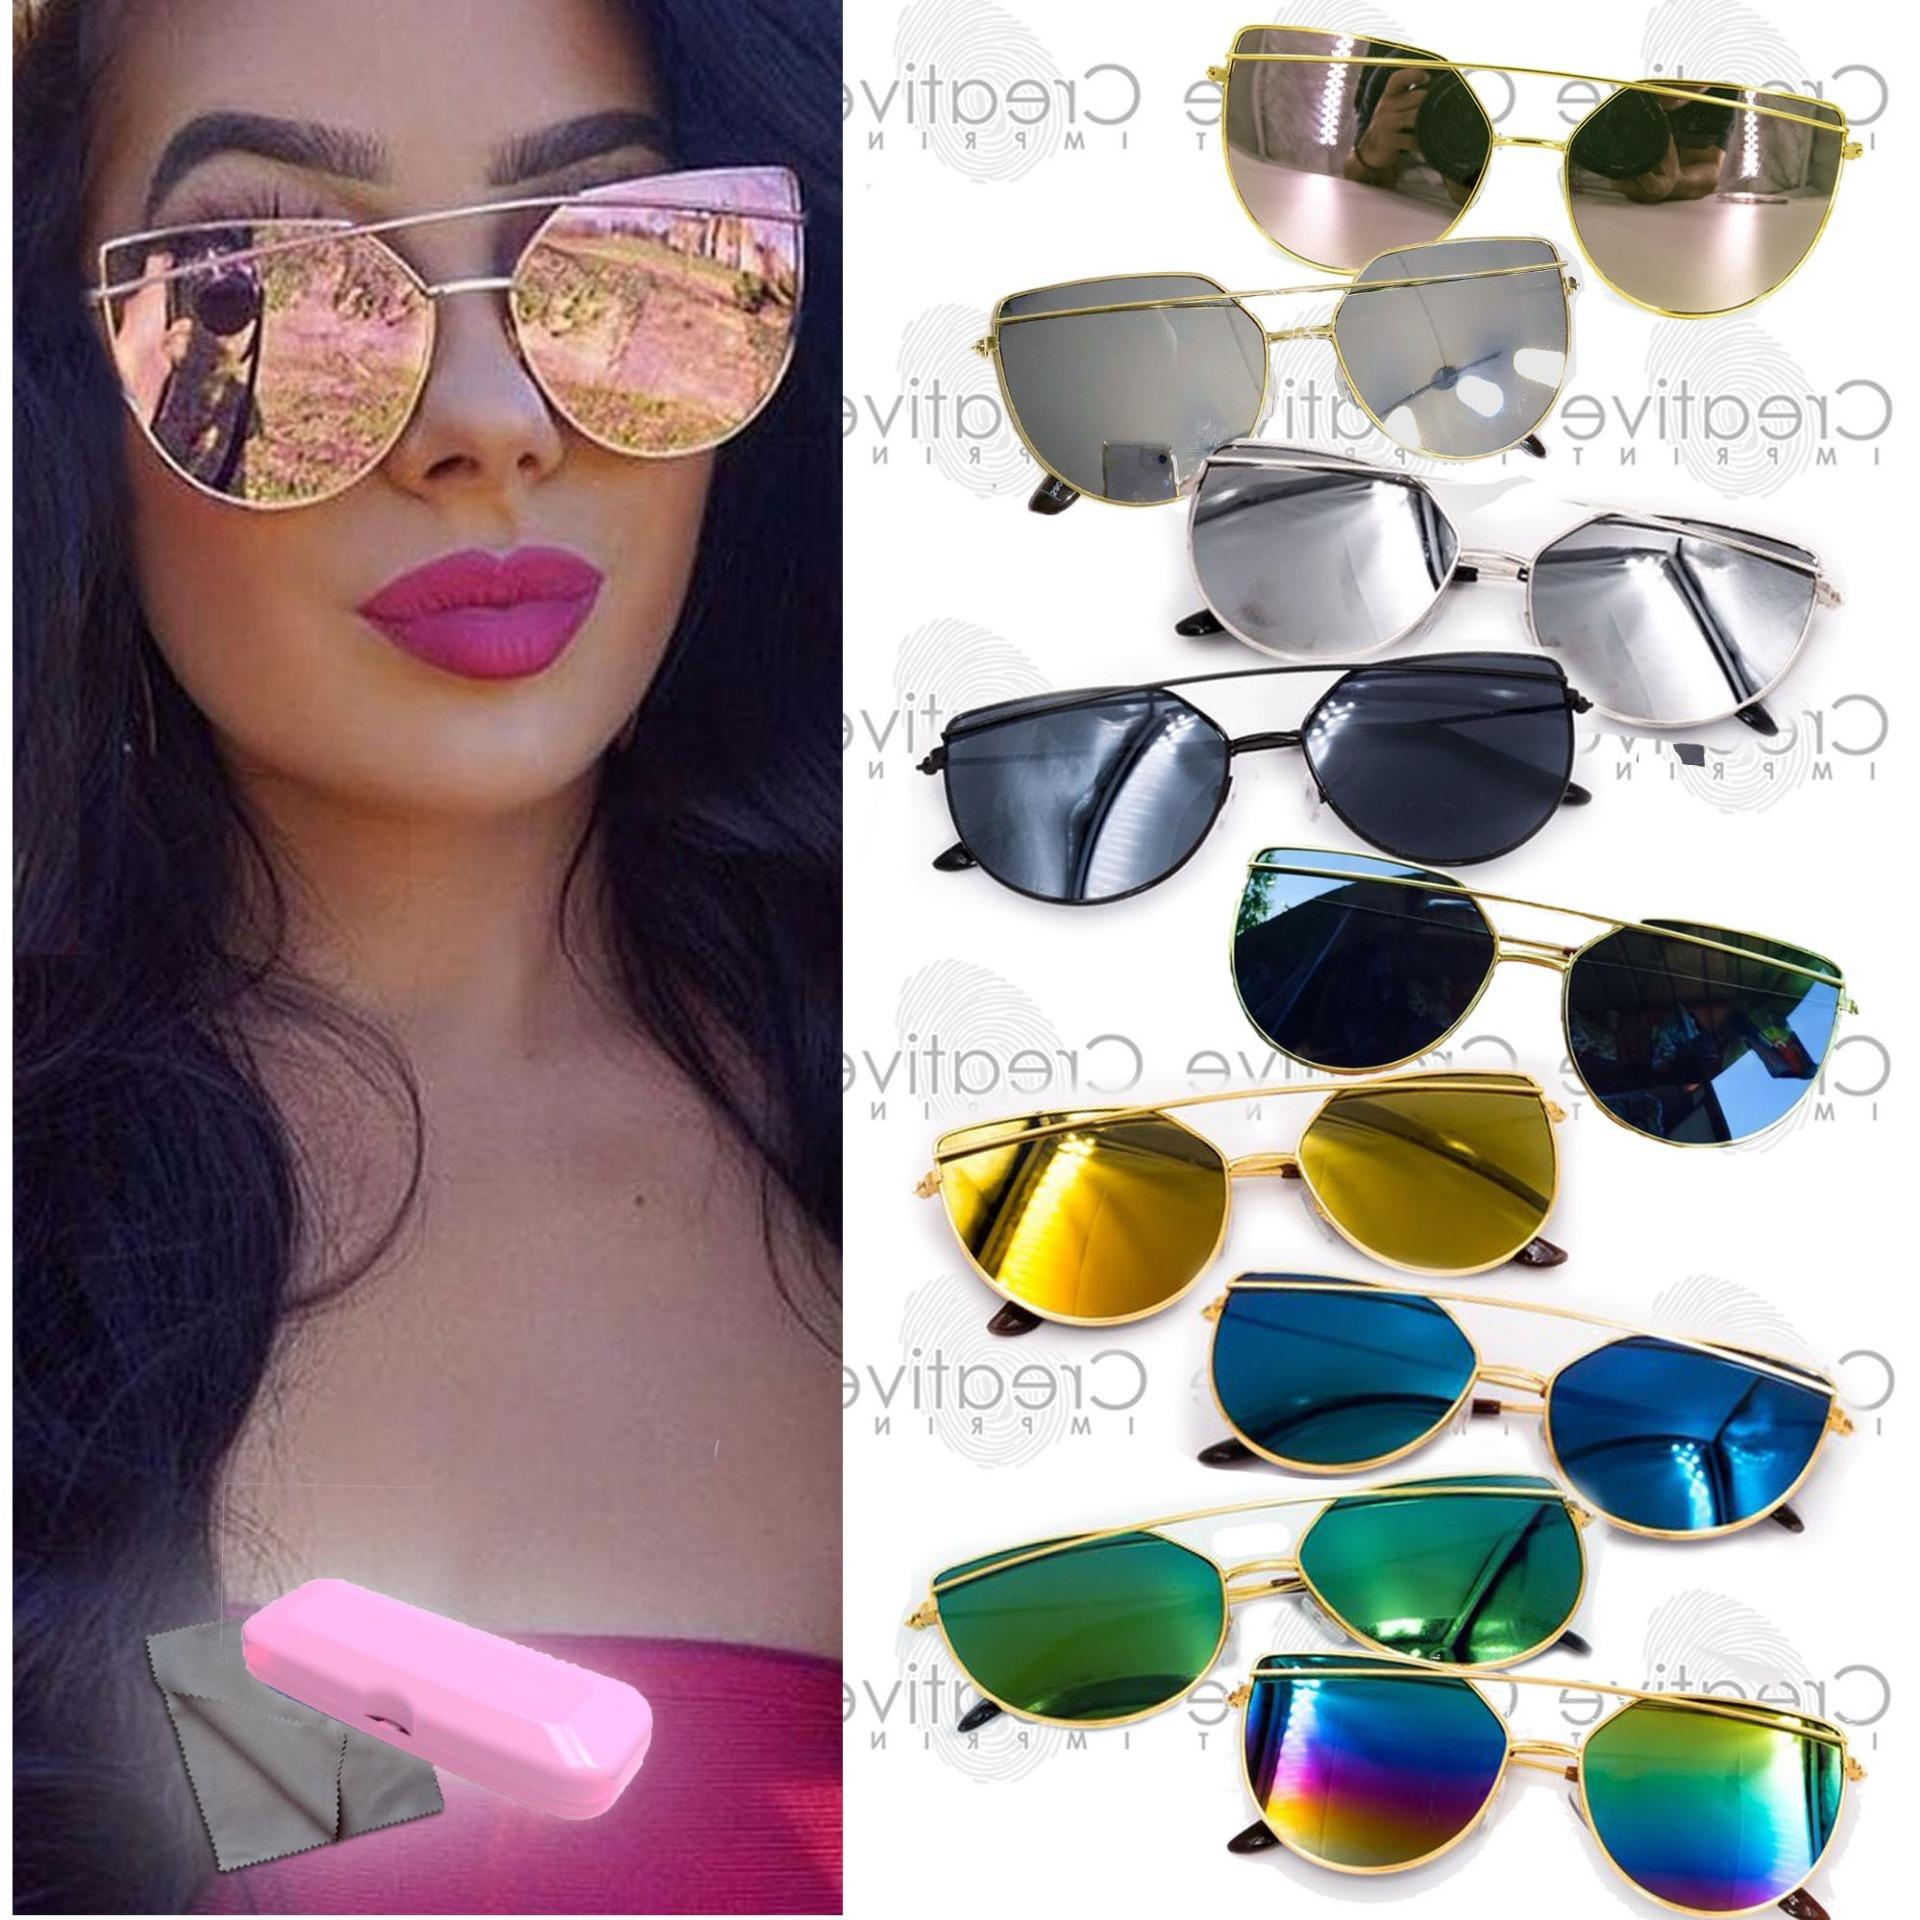 5b0252c7a1a3 Double Bridge Cat Eye Flat Sunnies Sunglasses (FREE CASE WIPER) Shades  Light Metal Lens